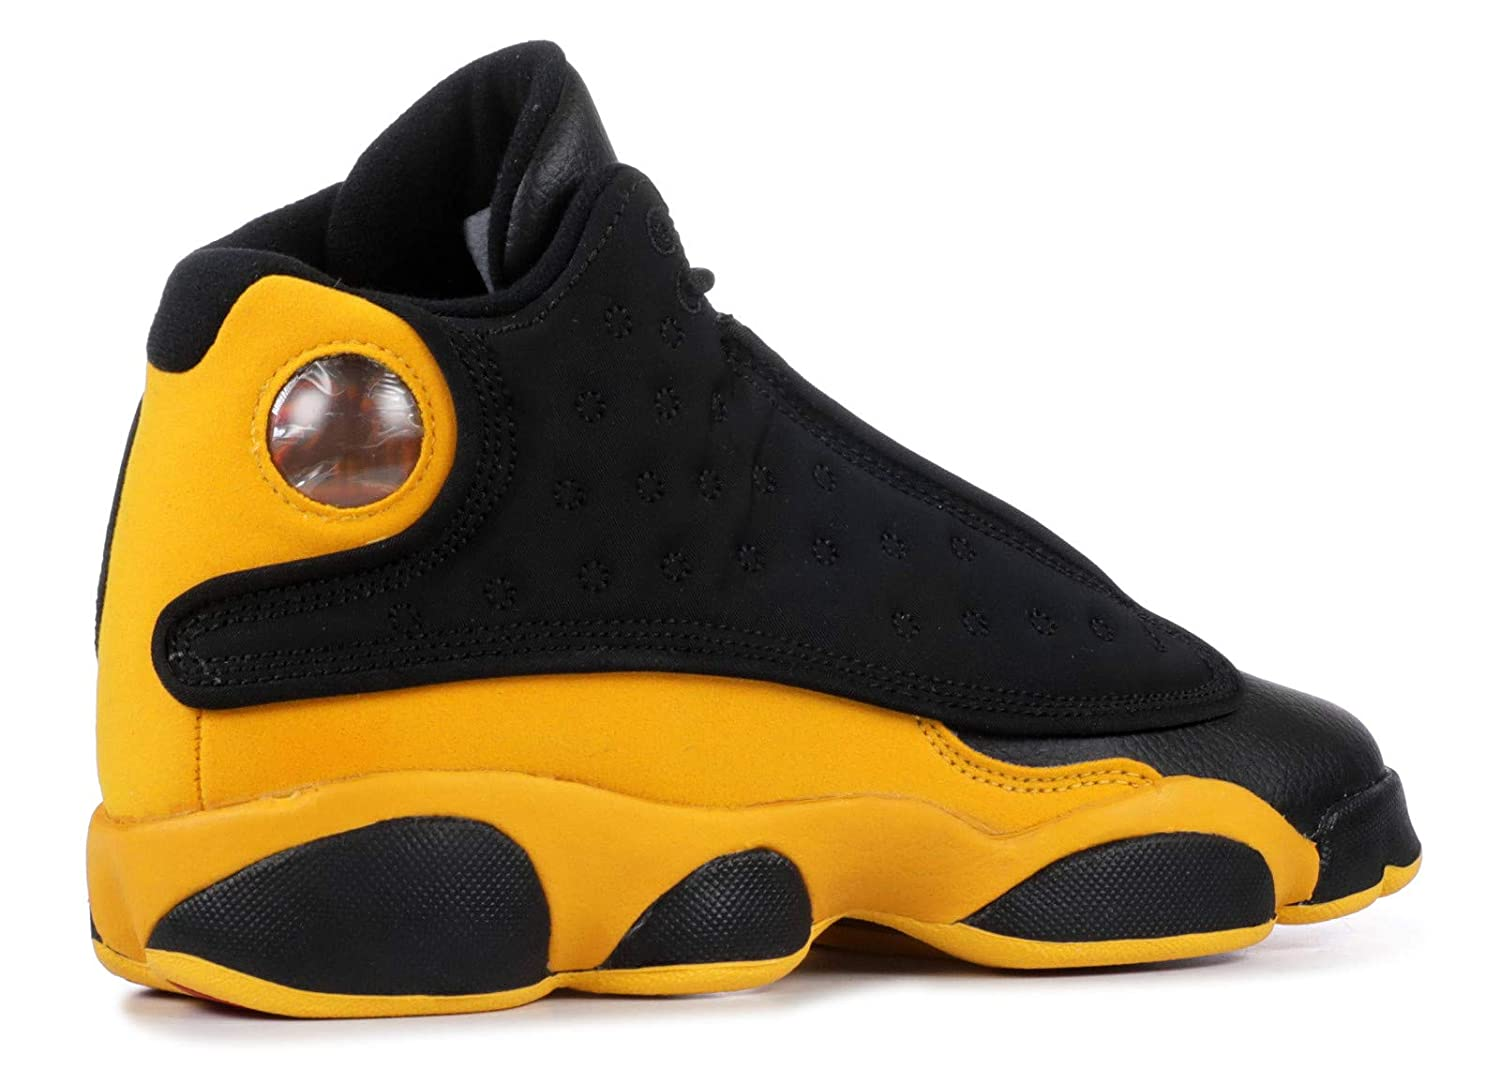 87d0e902307c7 Jordan Air 13 Retro (gs) Big Kids 884129-035 Size 6.5